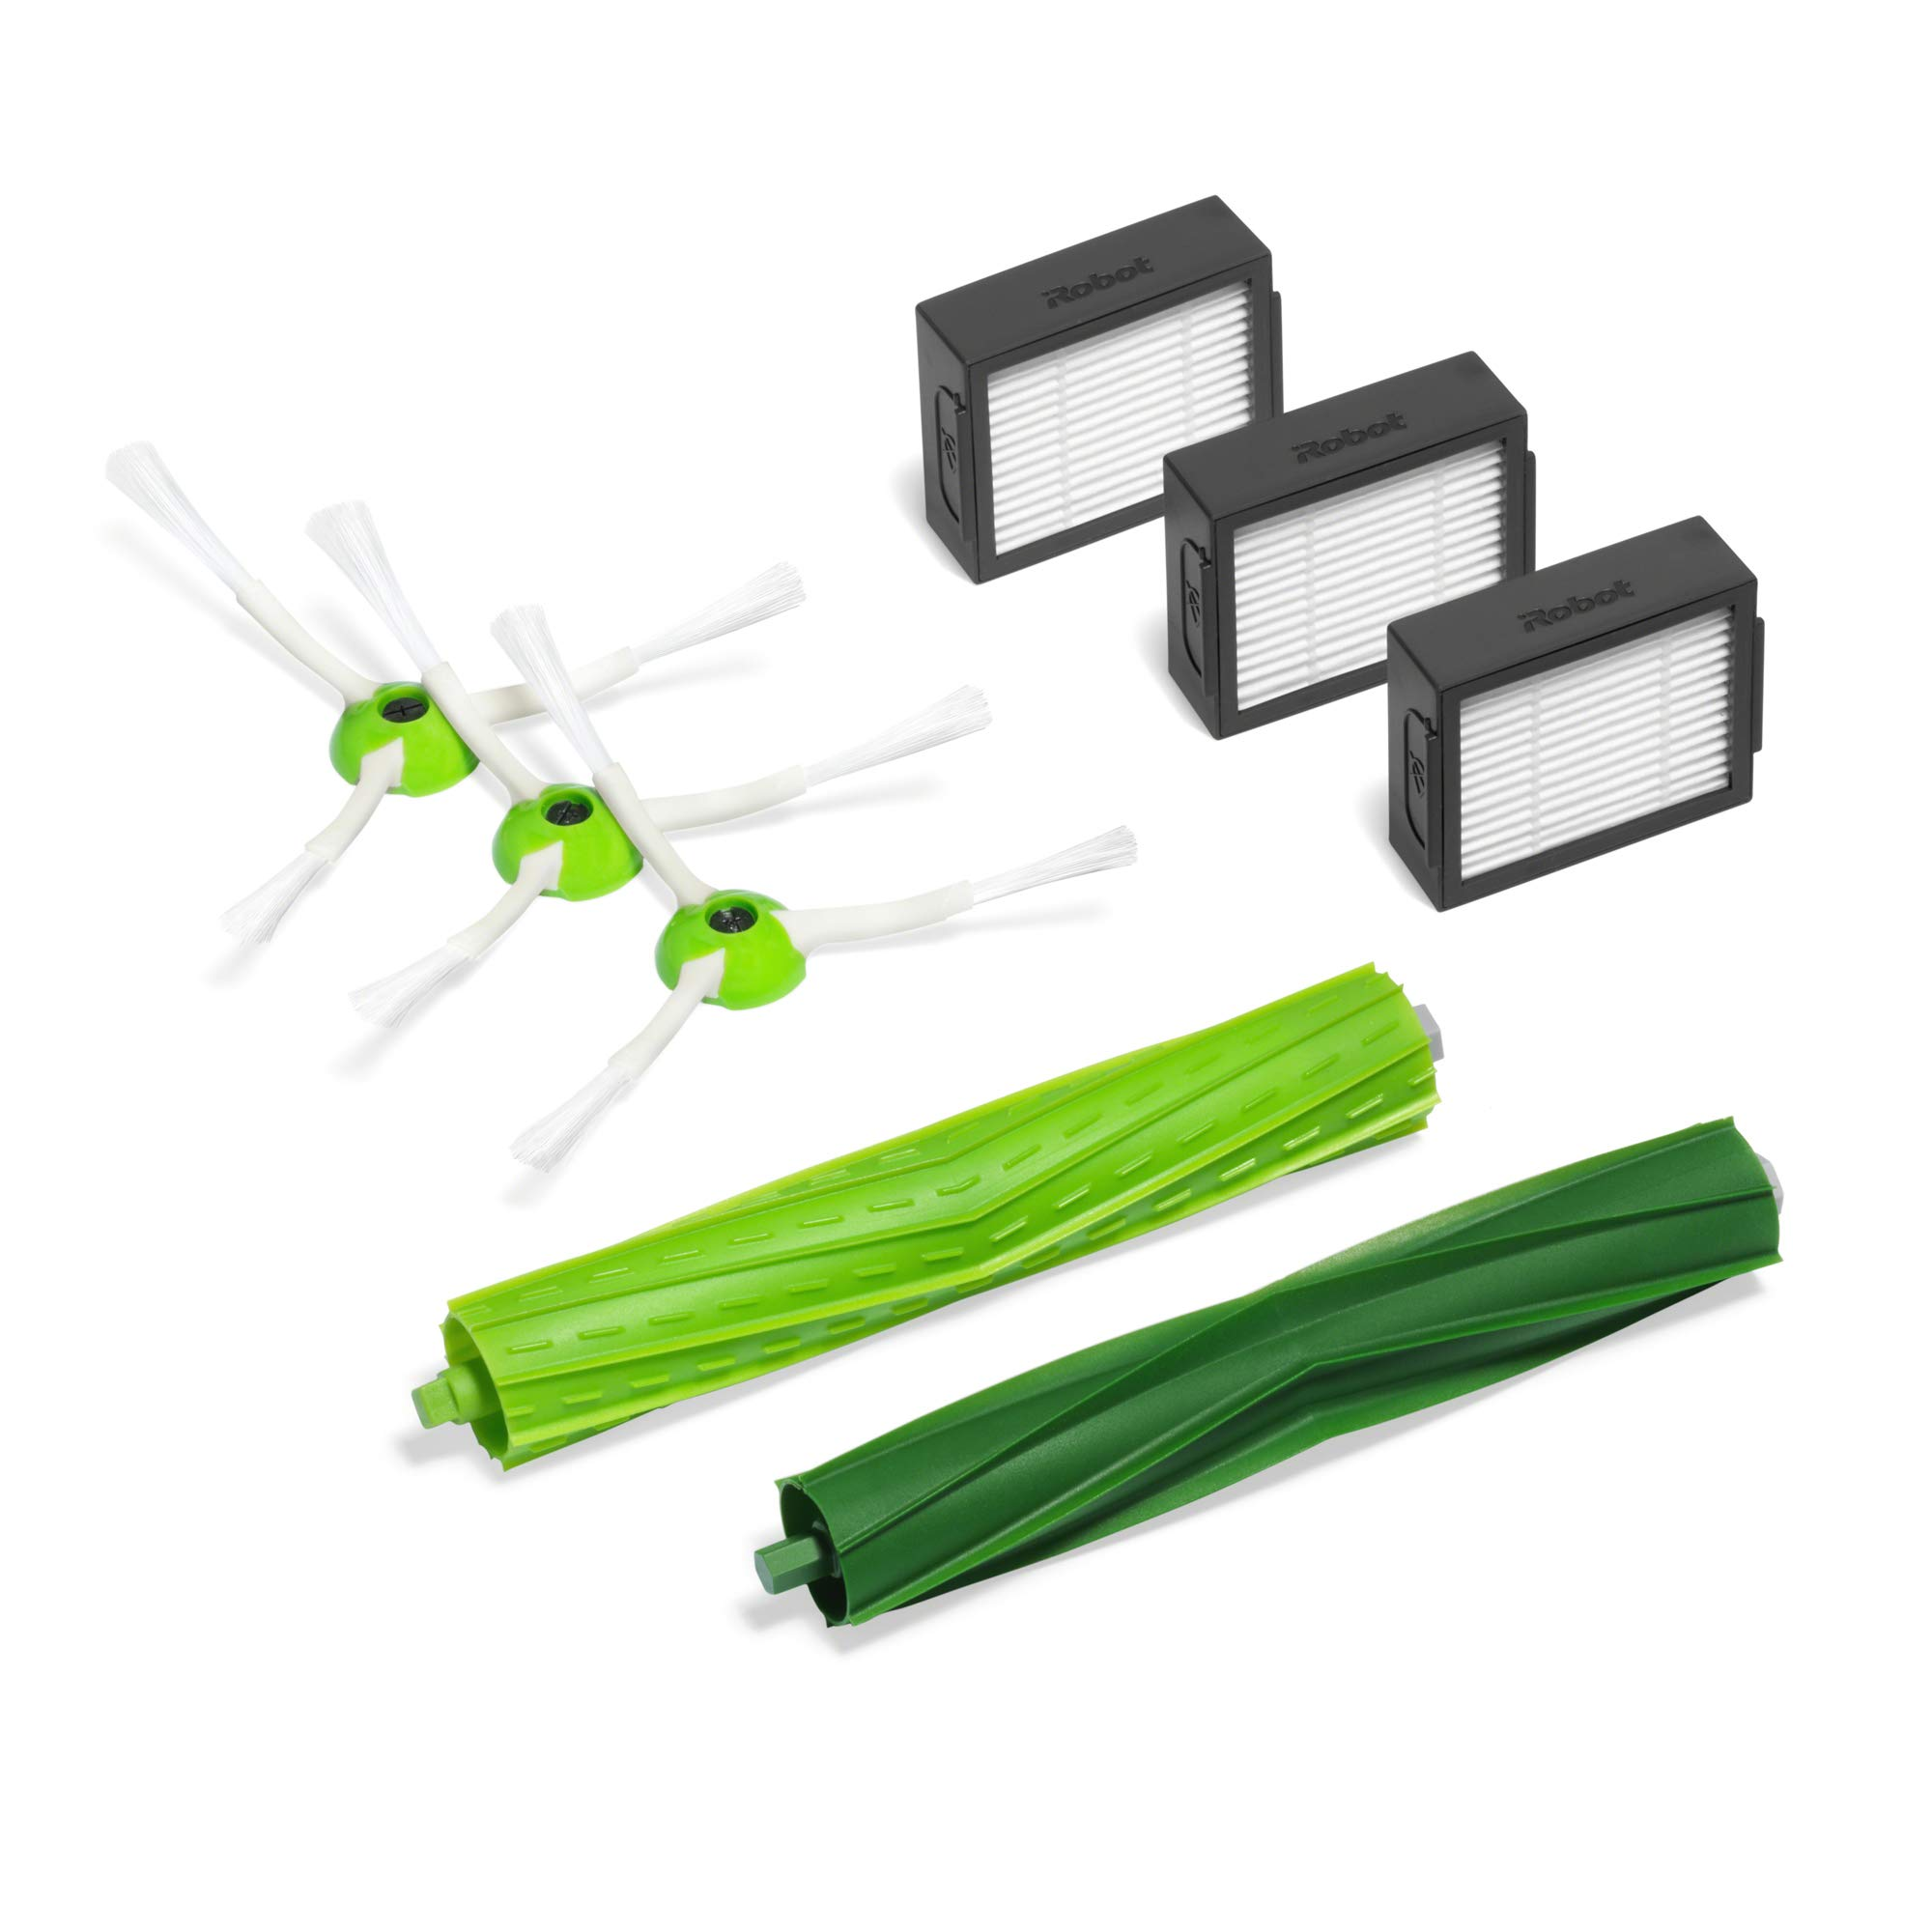 iRobot  Authentic Replacement Parts- Roomba e and i Series Replenishment Kit, (3 High-Efficiency Filters, 3 Edge-Sweeping Brushes, and 1 Set of Multi-Surface Rubber Brushes) by iRobot